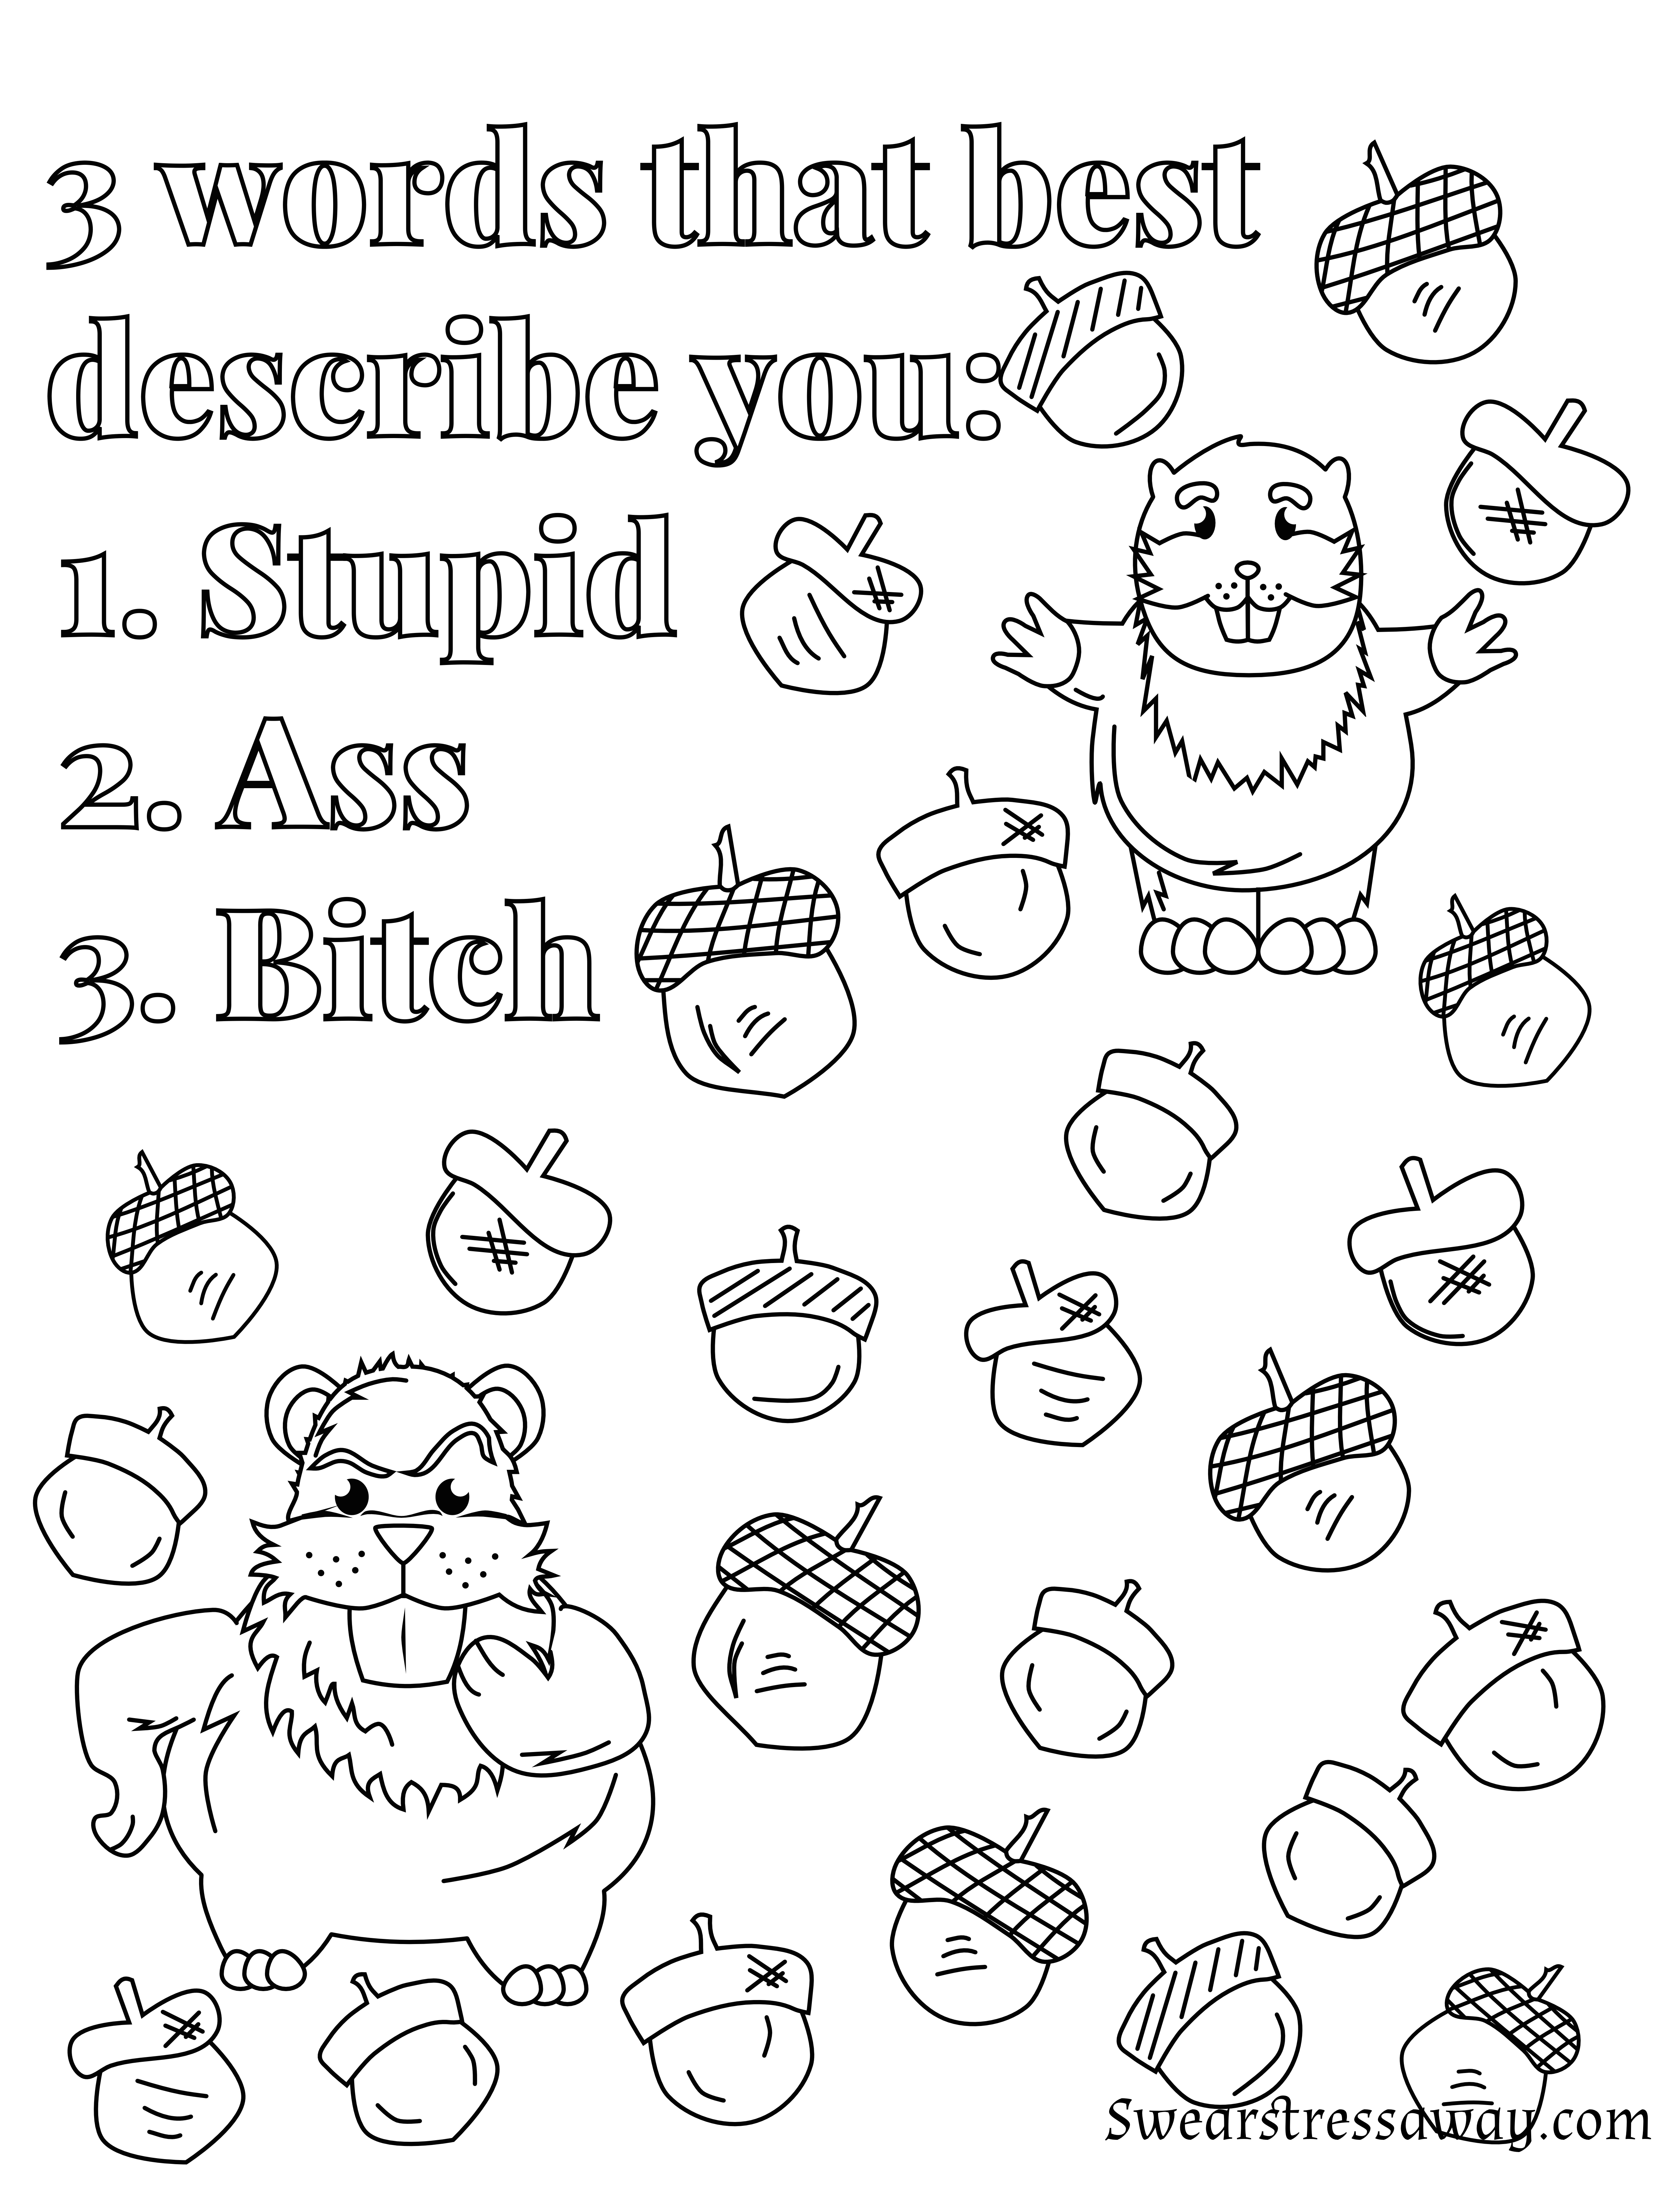 Coloring pages for adults curse words - Swear Word Coloring Page Adult Coloring Page